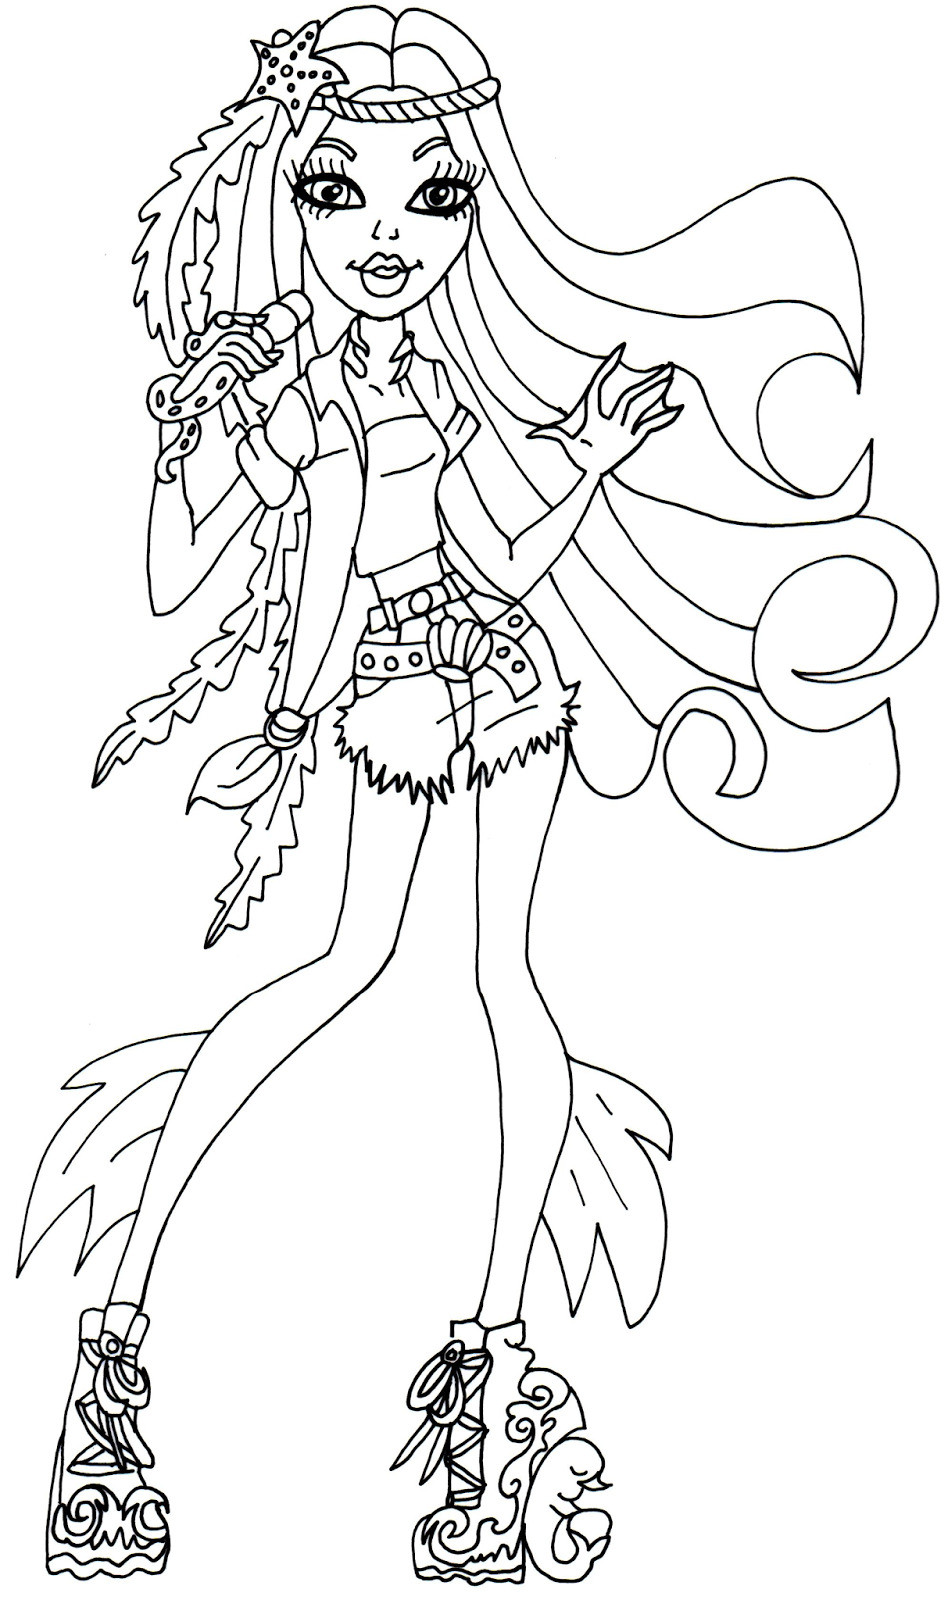 Monster High Malvorlagen Neu Free Printable Monster High Coloring Page for Madison Fear Luxus Sammlung